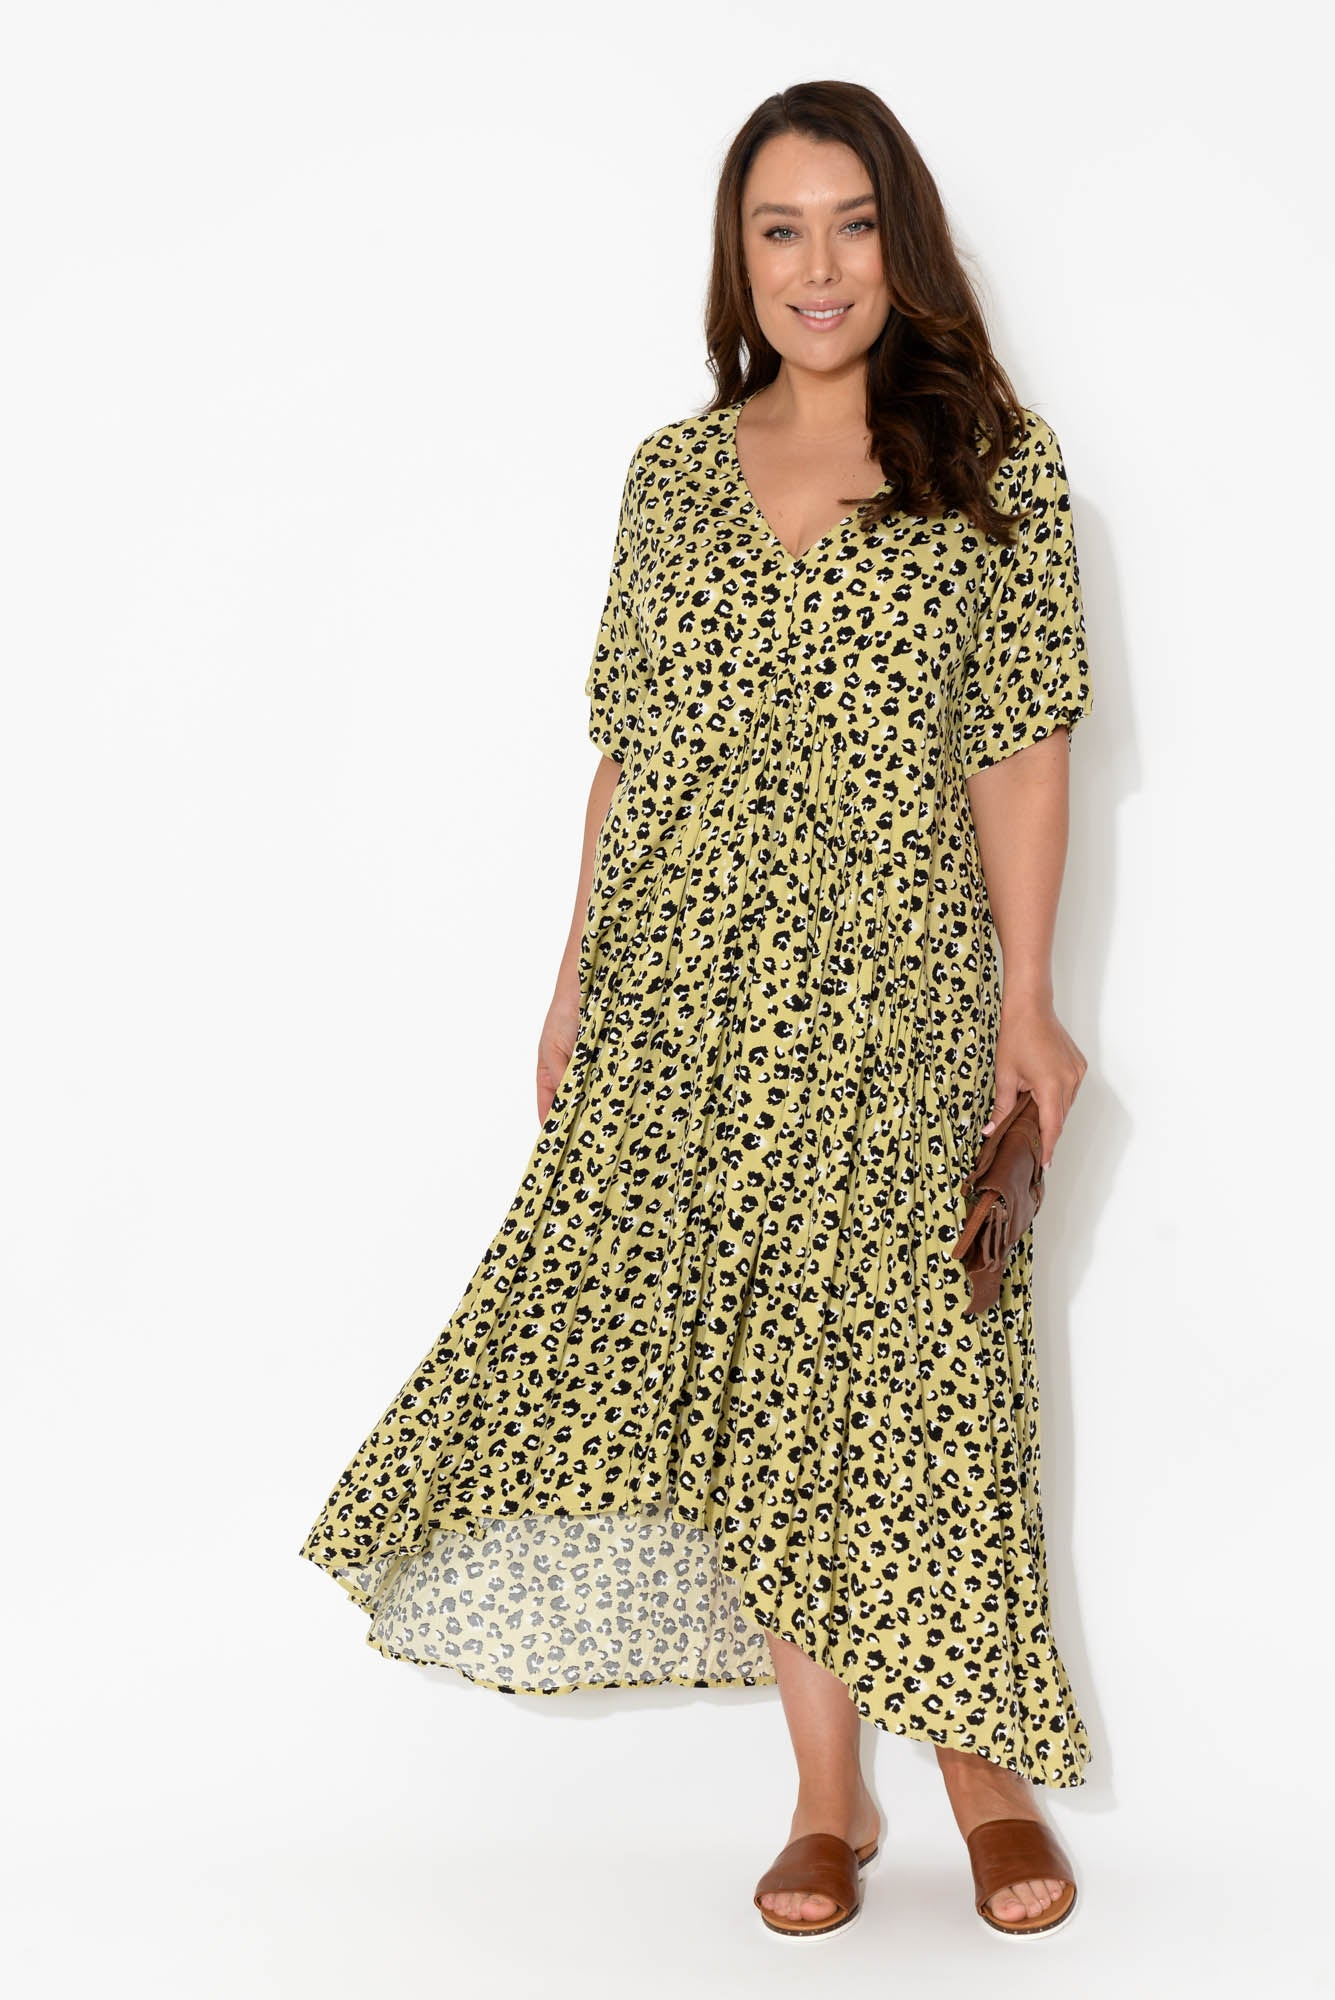 ebe739f6b8 PRE ORDER Leopard Peak Maxi Dress - Blue Bungalow. Hover to zoom